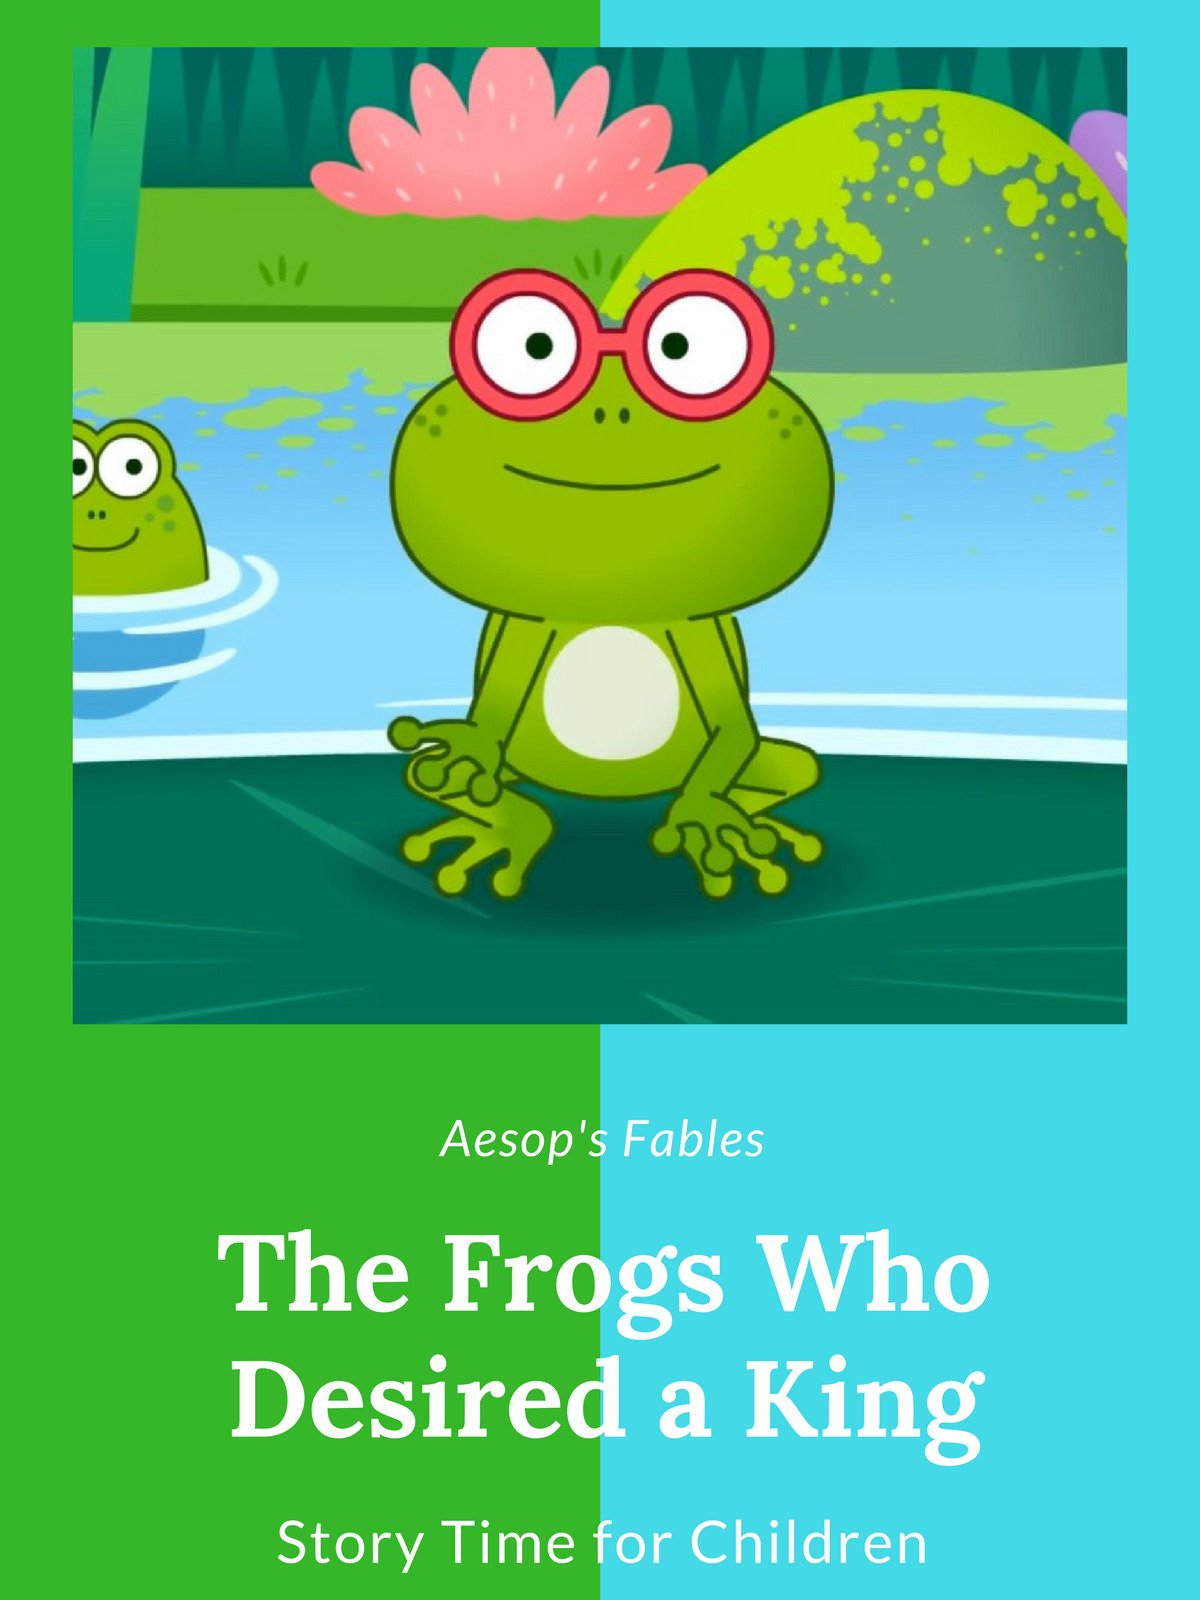 The Frogs Who Desired a King